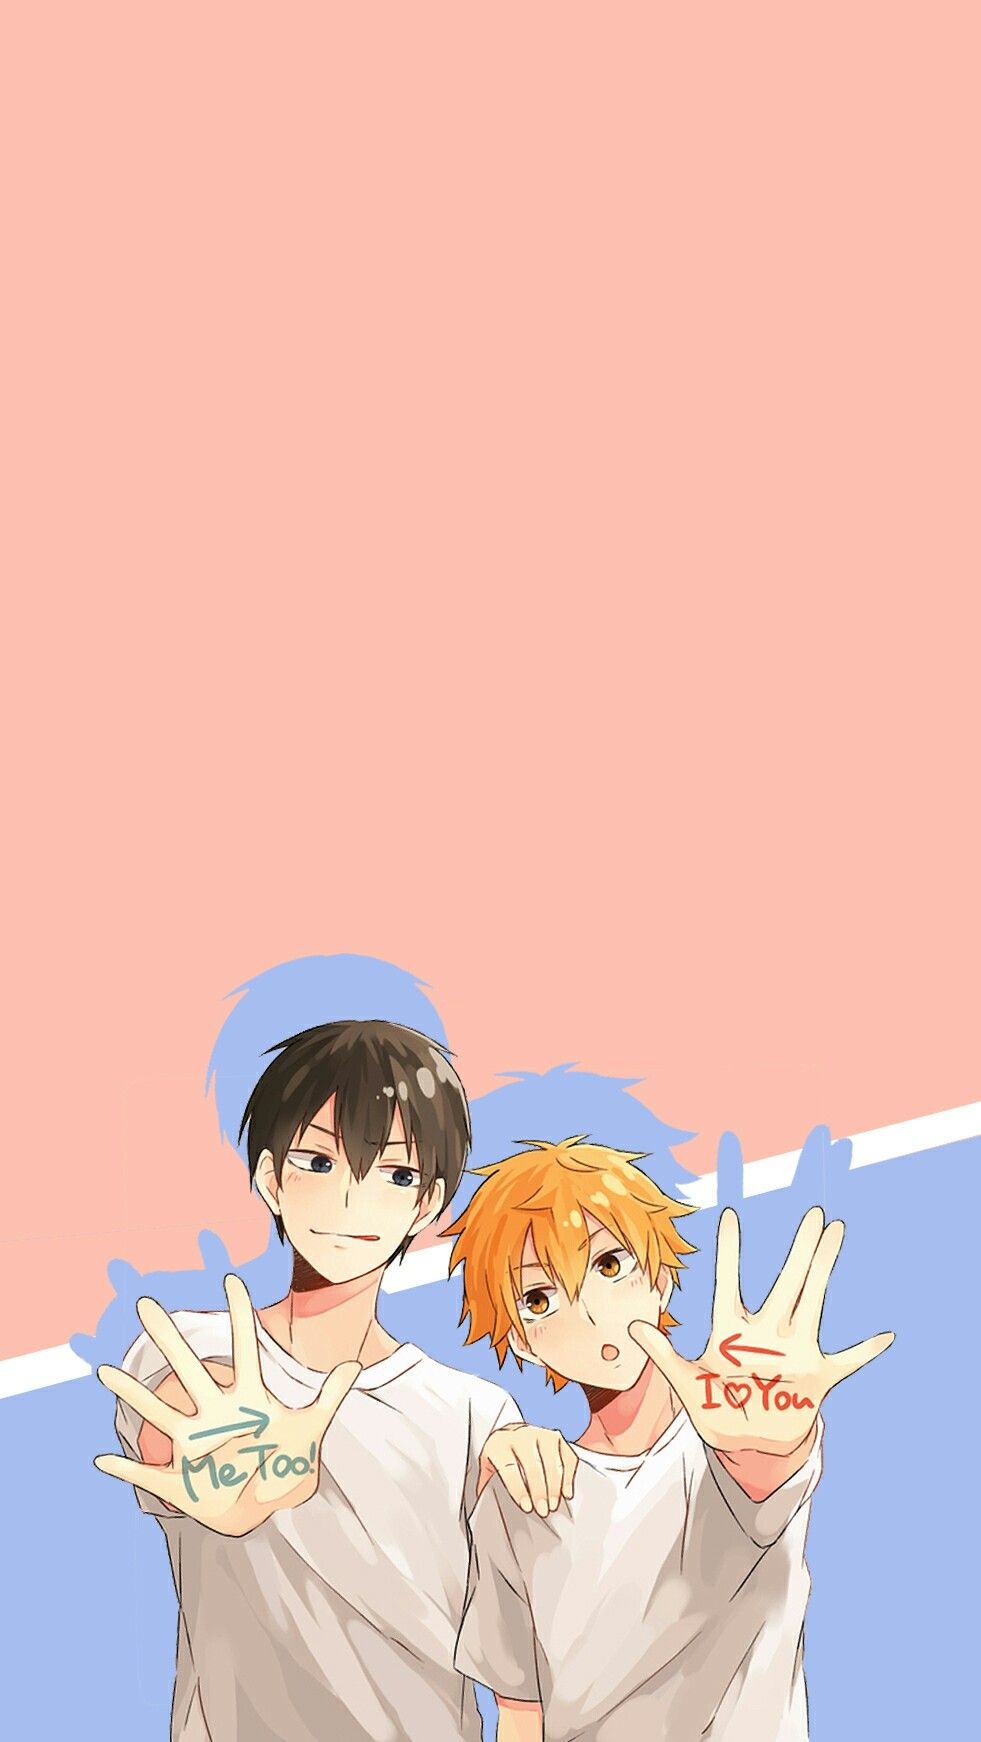 haikyuu kagehina wallpaper Haikyuu wallpaper, Haikyuu anime